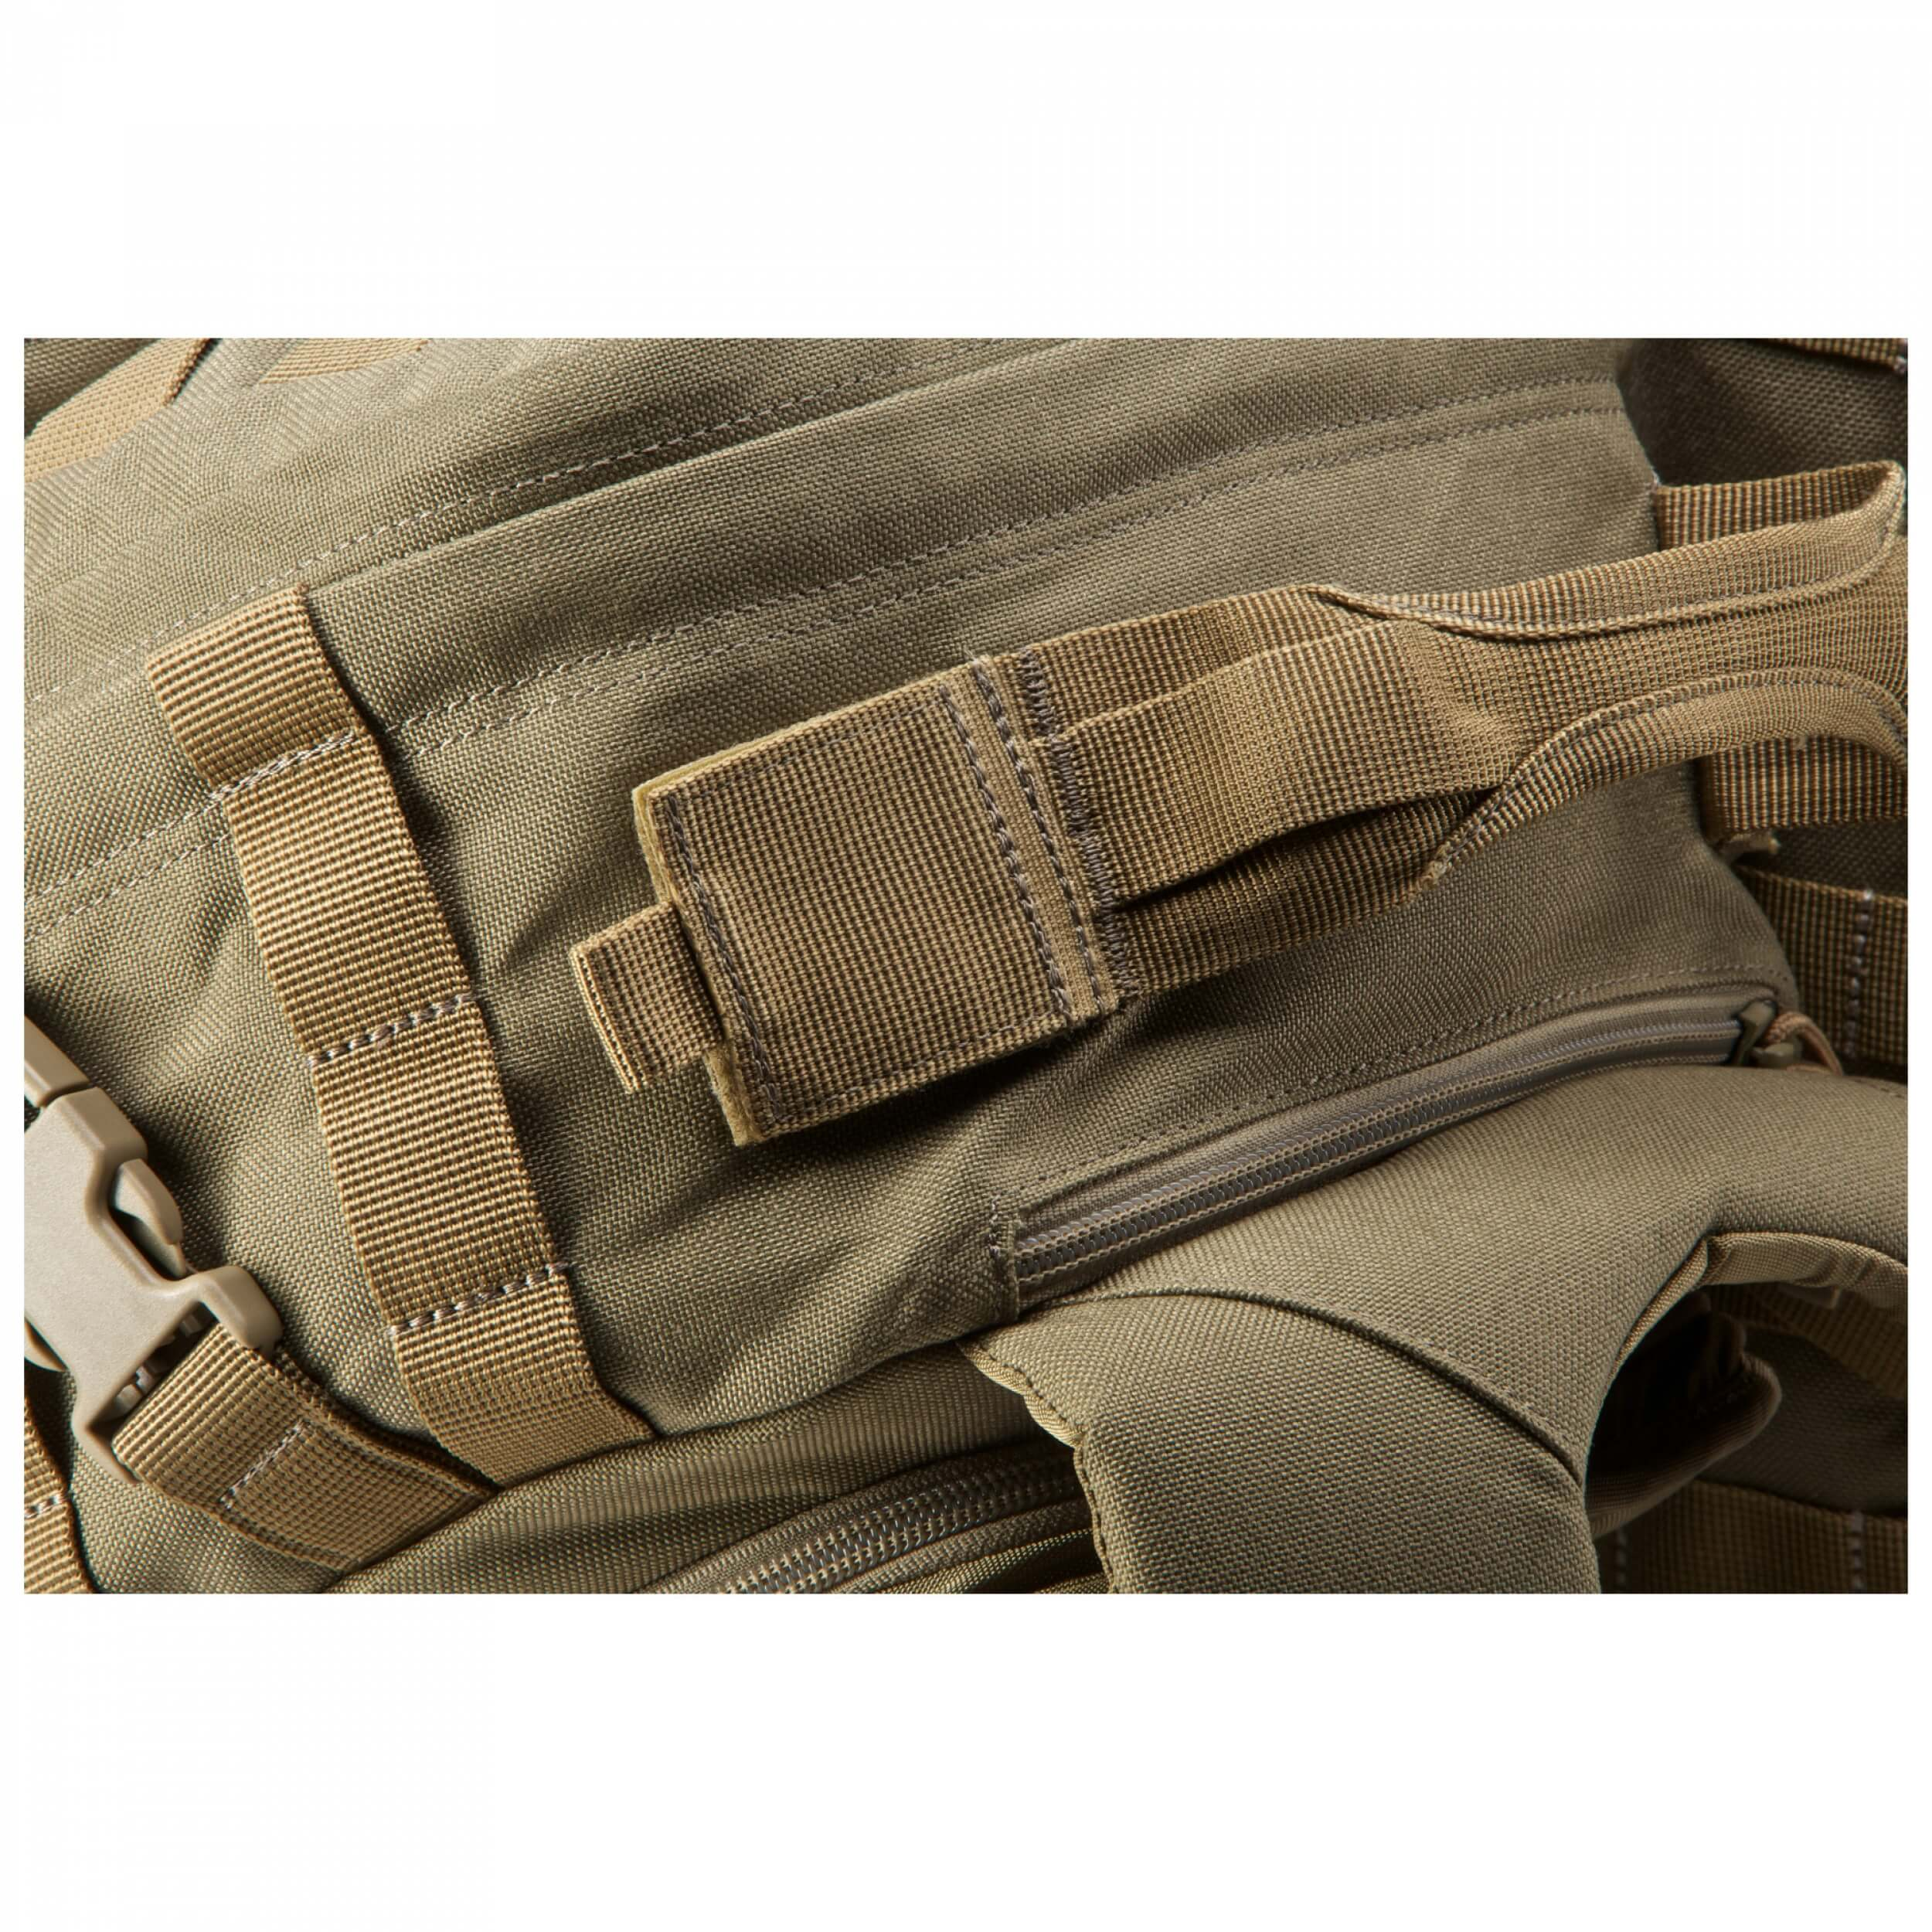 5.11 Tactical Rush 24 Backpack Tac OD